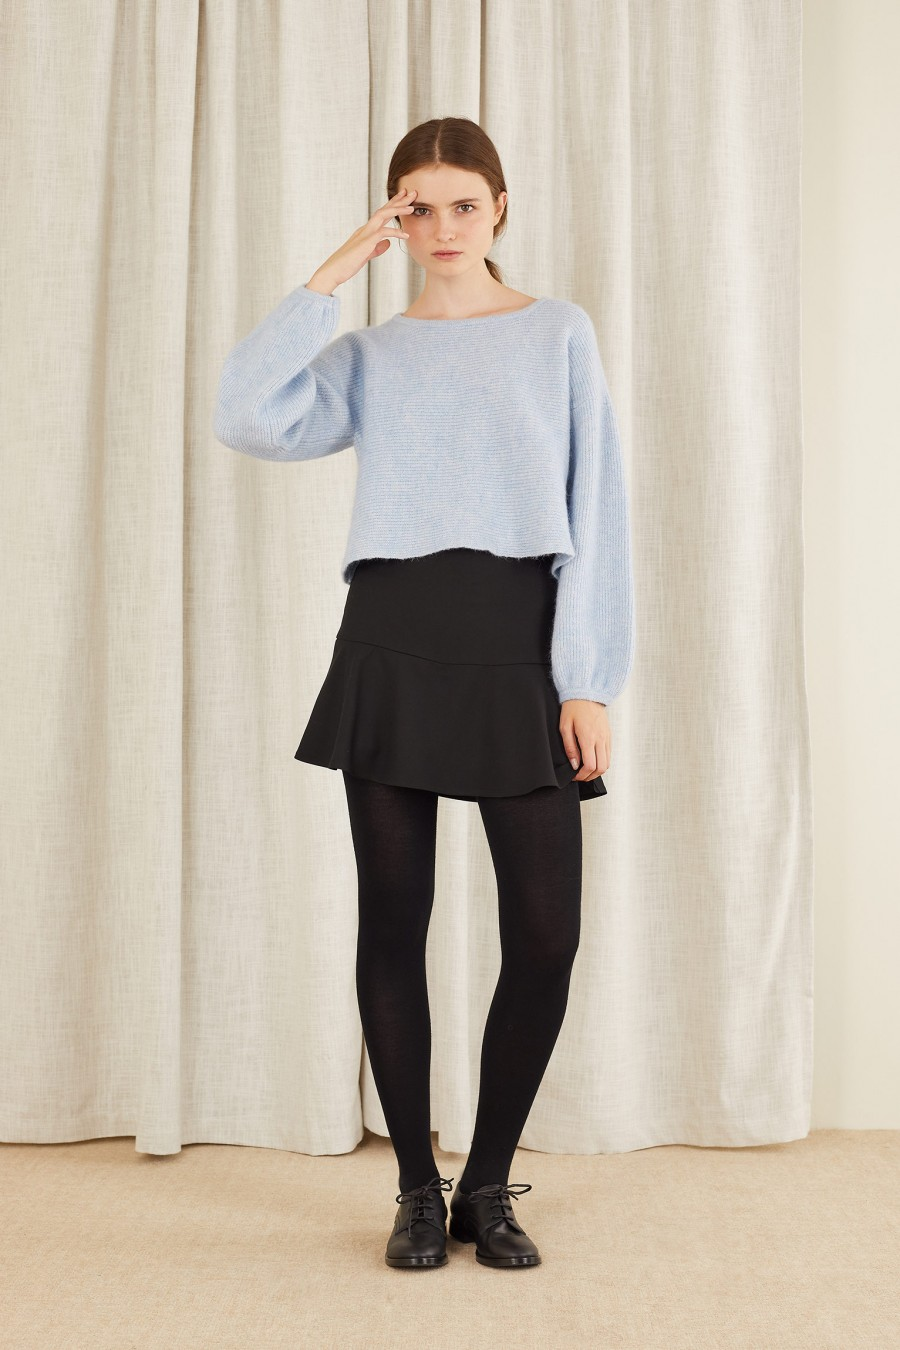 vintage look with miniskirt and jumper